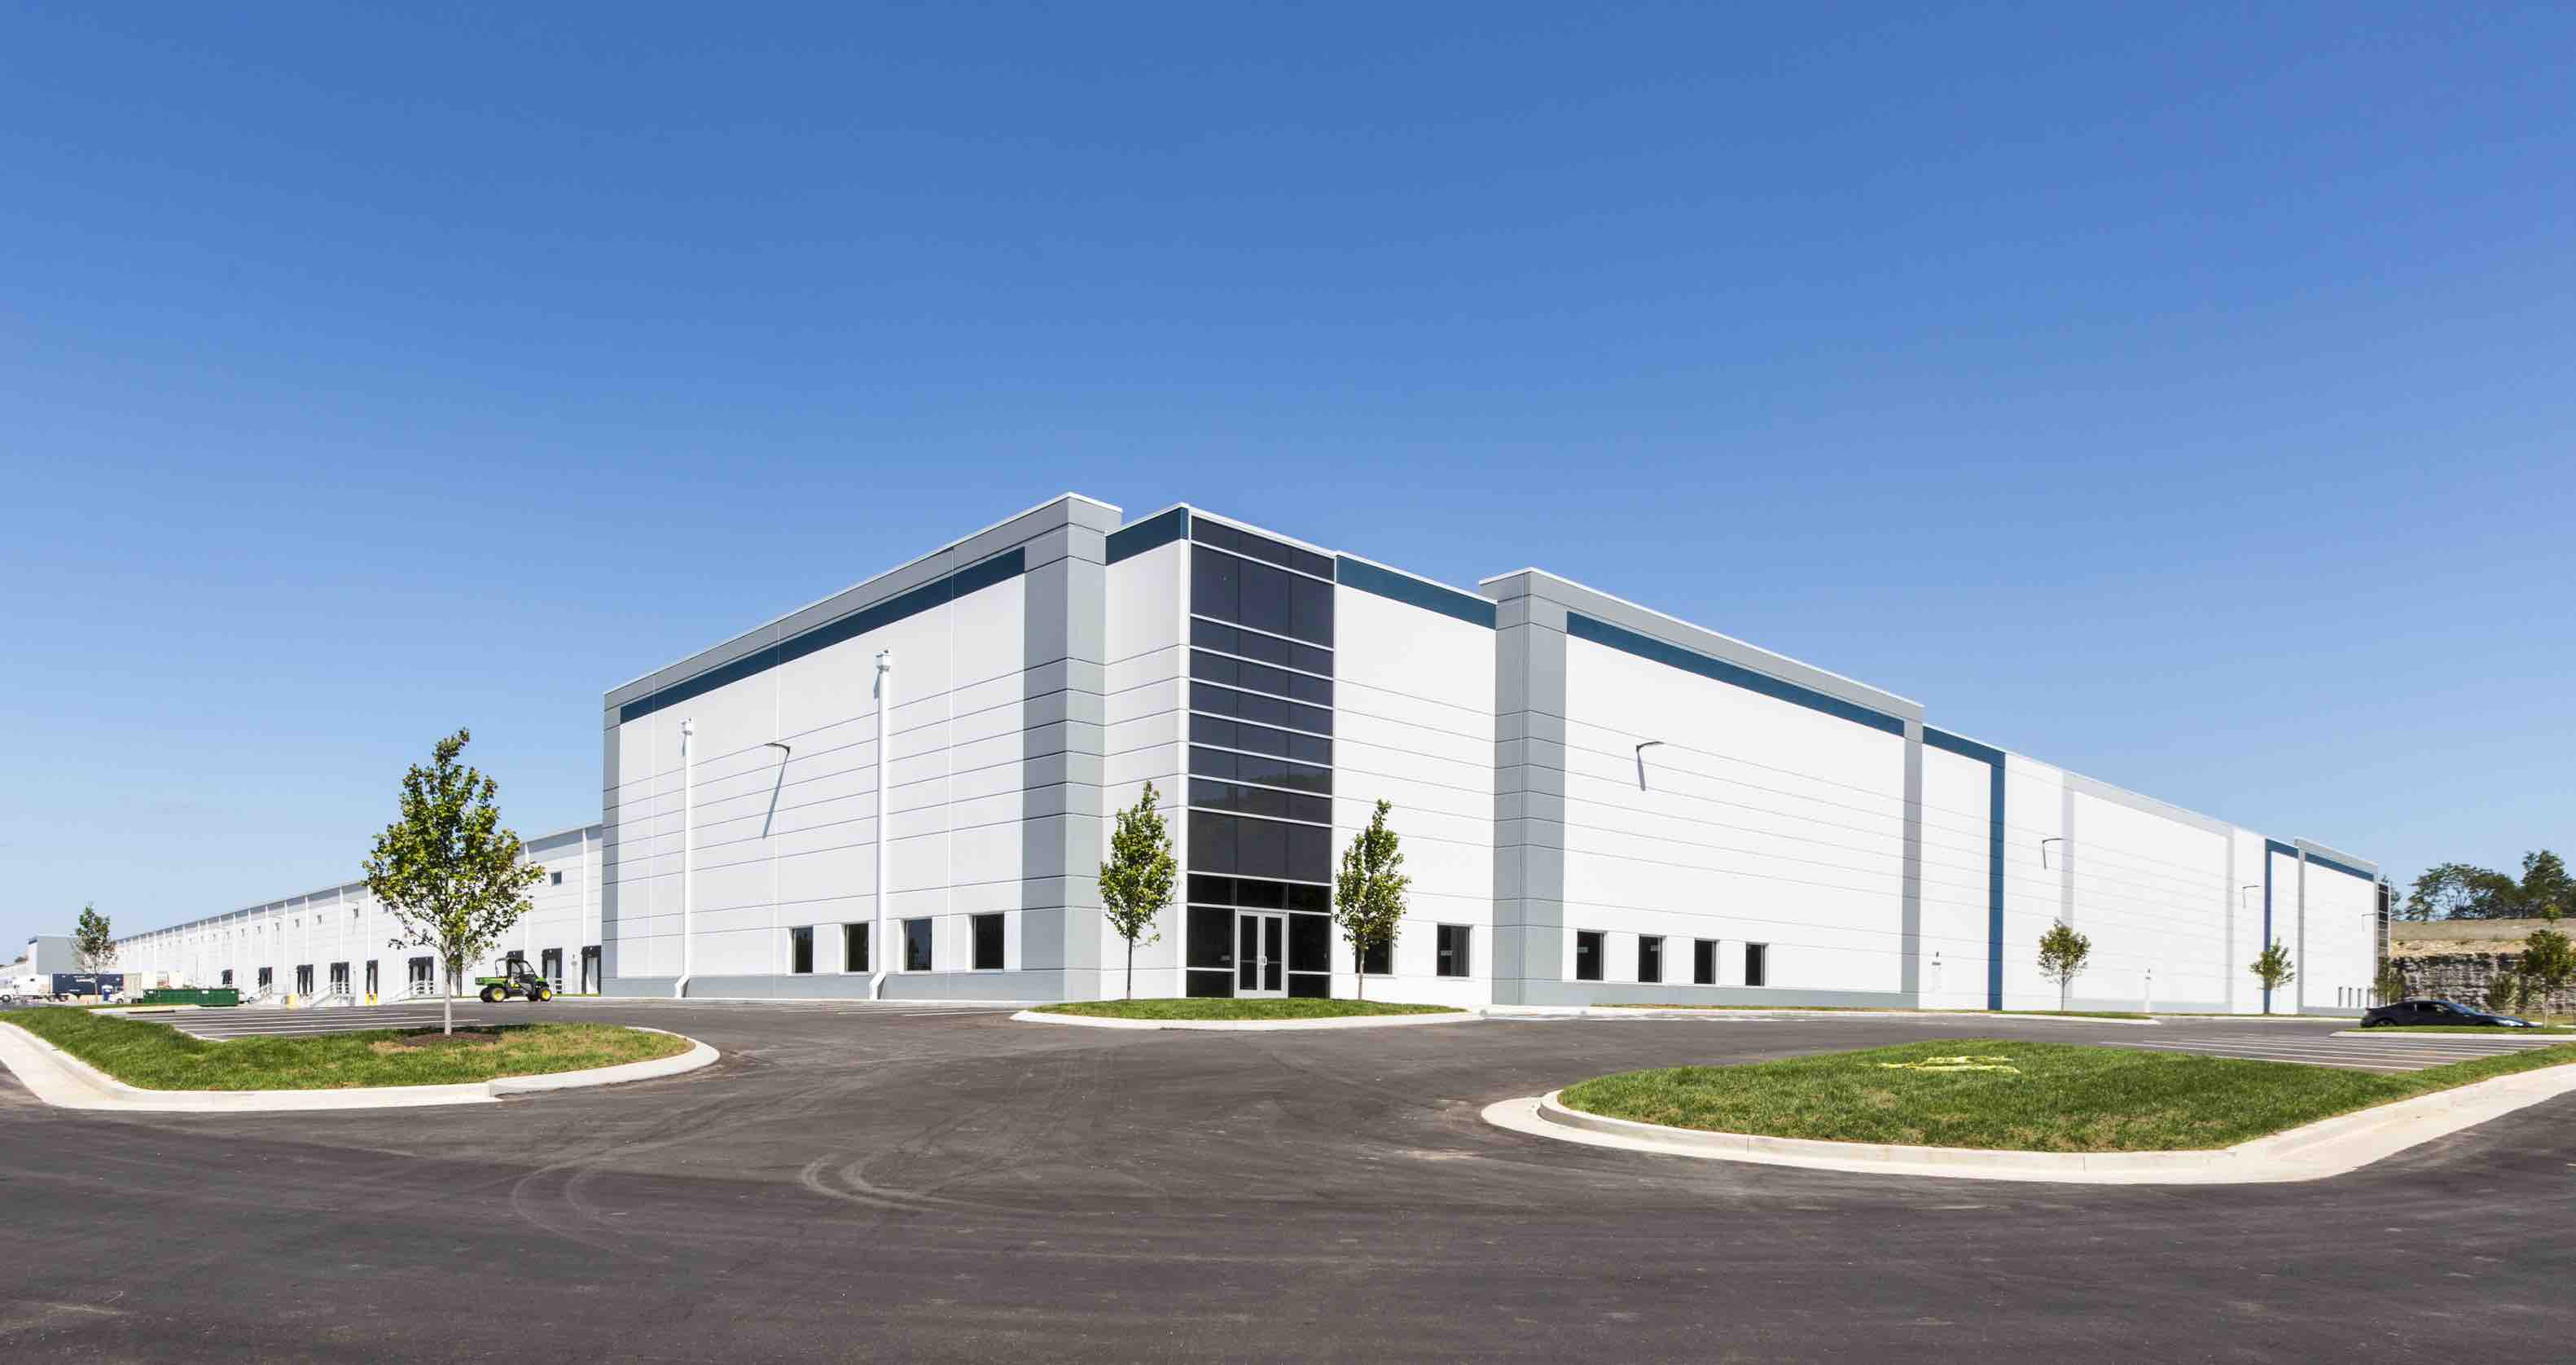 Warehouse Designer Itasca Based Premier Design 43 Build Group Llc Completes